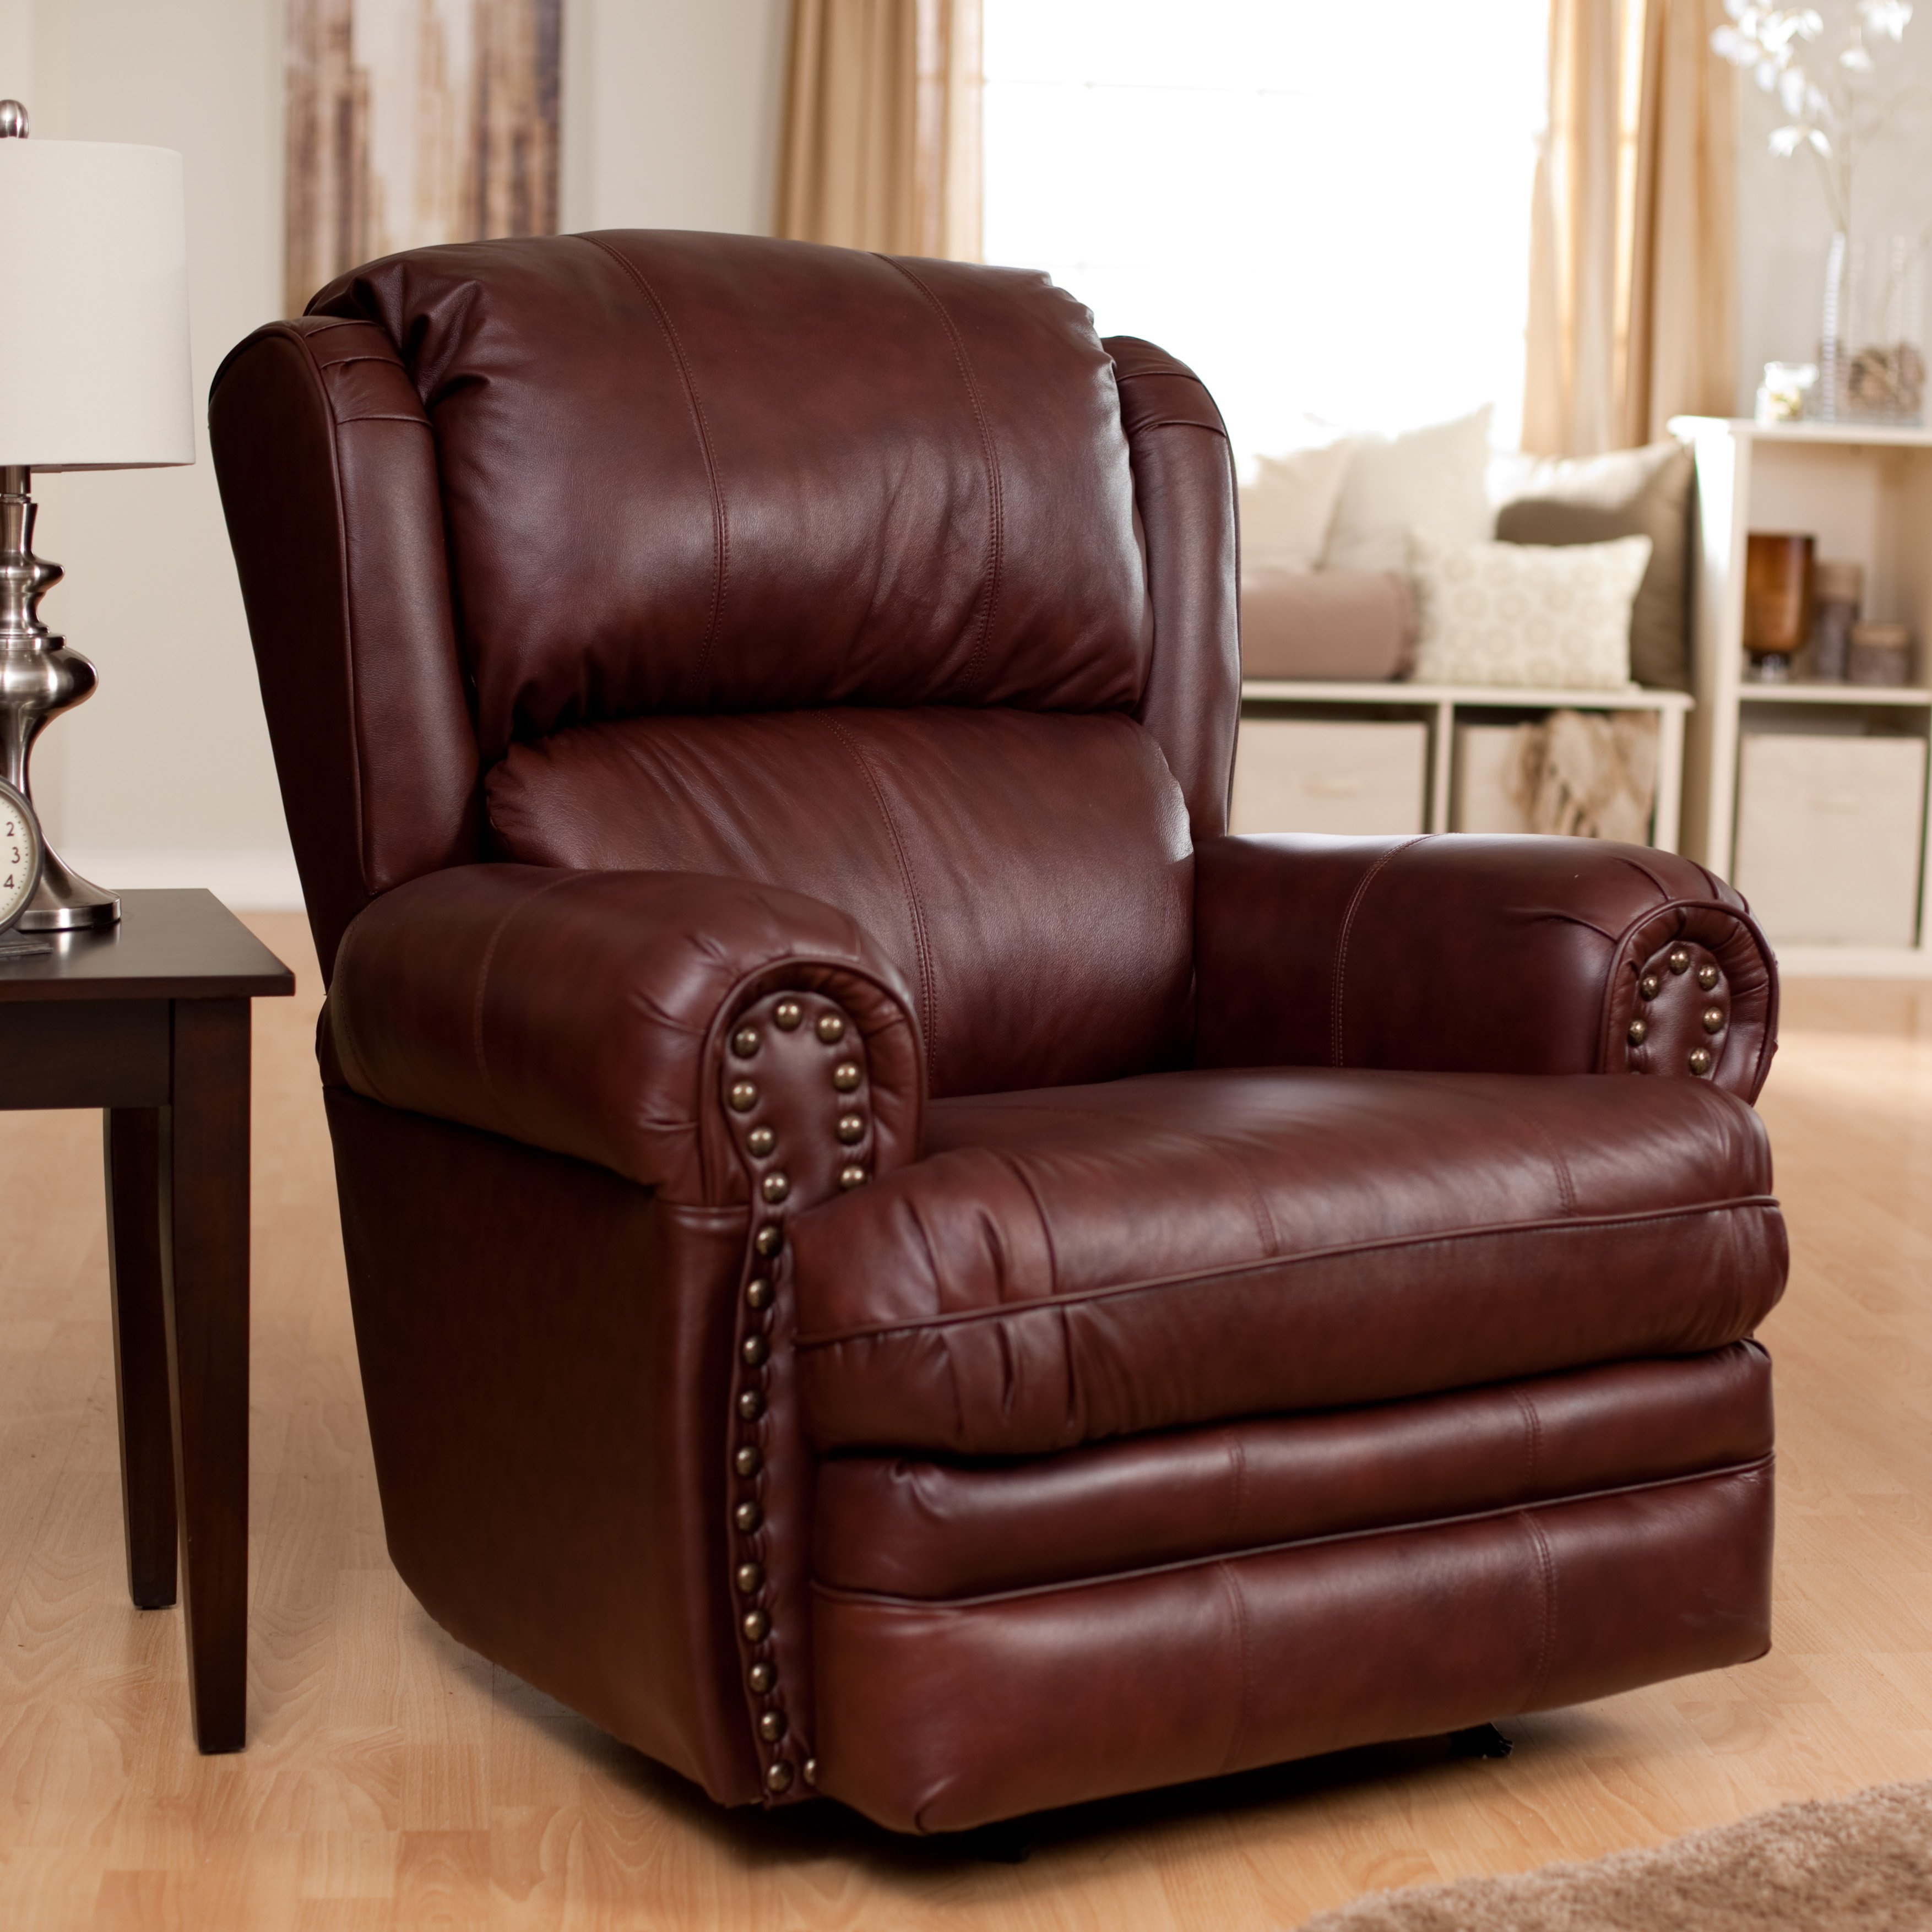 Furniture: Surprising Simmons Recliners For Contemporary Living Room Within Rogan Leather Cafe Latte Swivel Glider Recliners (Image 9 of 20)